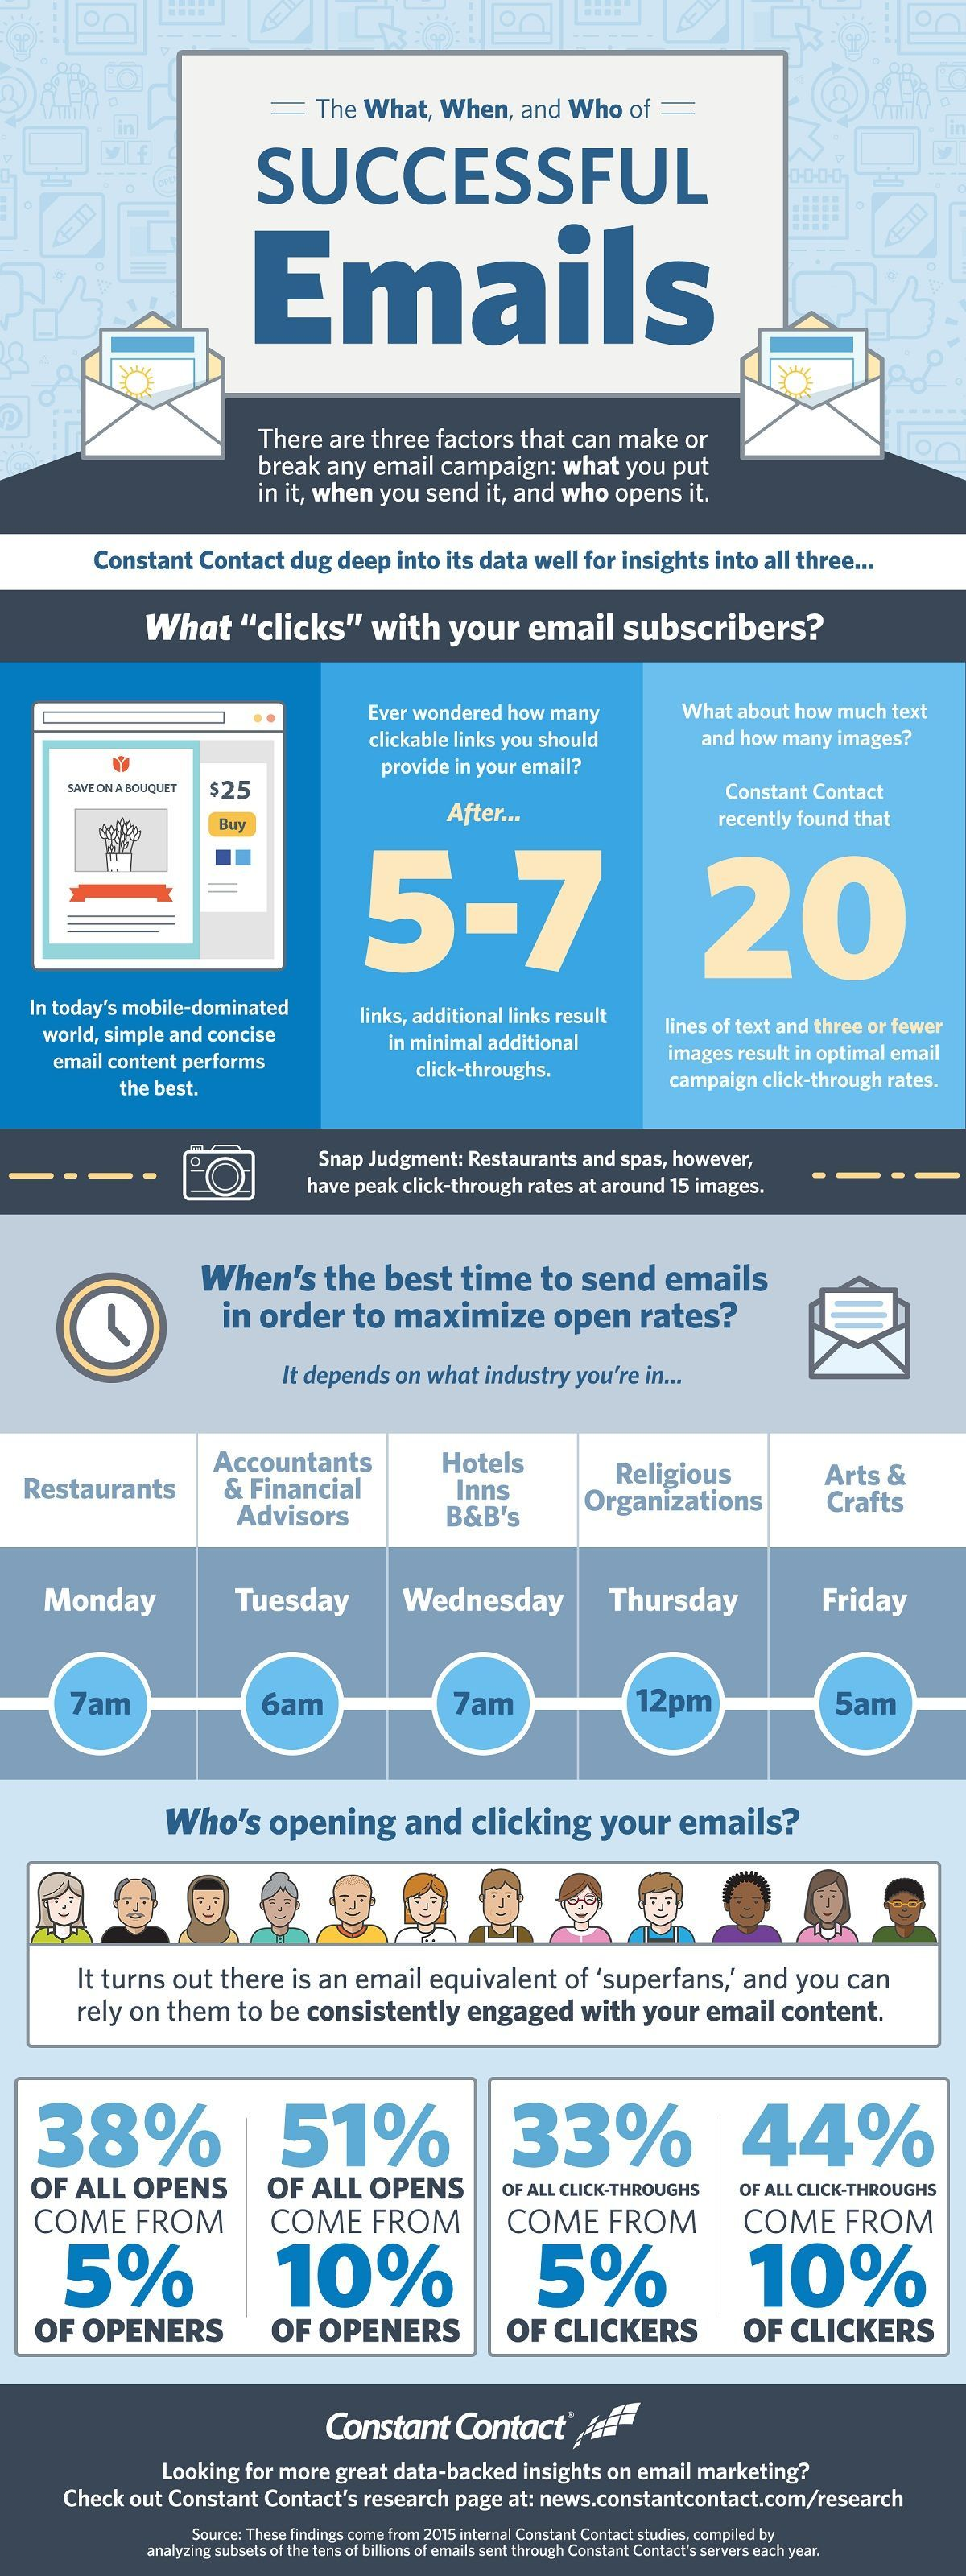 The What, When, and Who of Successful Emails infographic